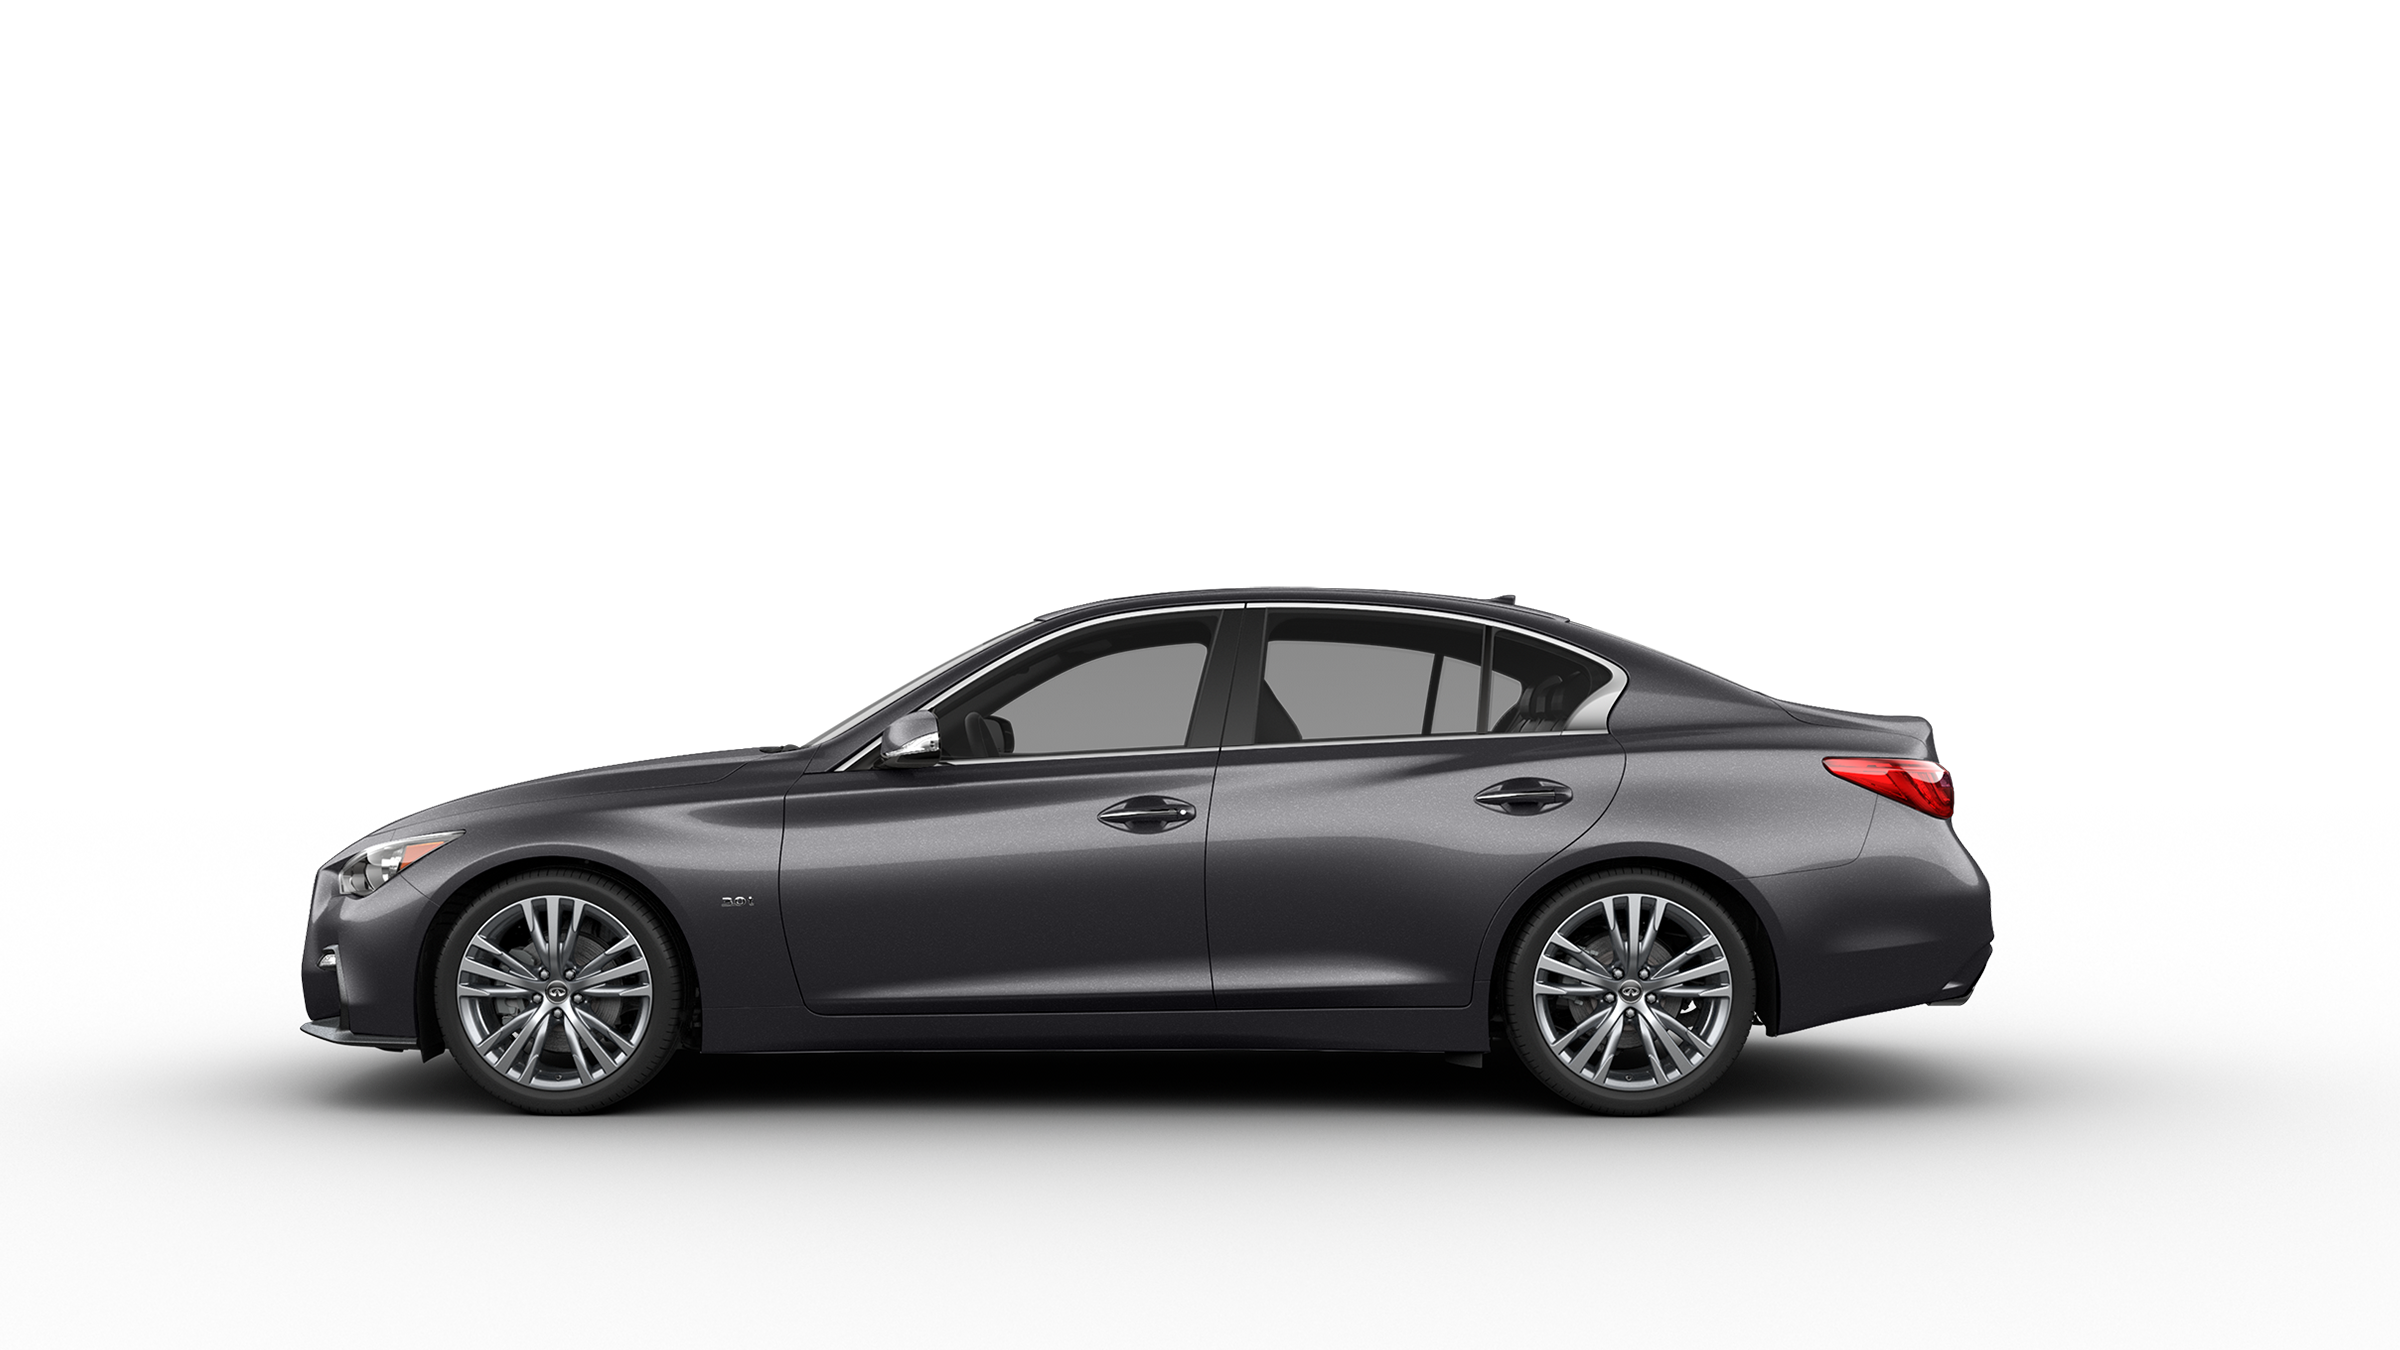 2019 INFINITI Q50 Vehicle Photo in Mechanicsburg, PA 17050